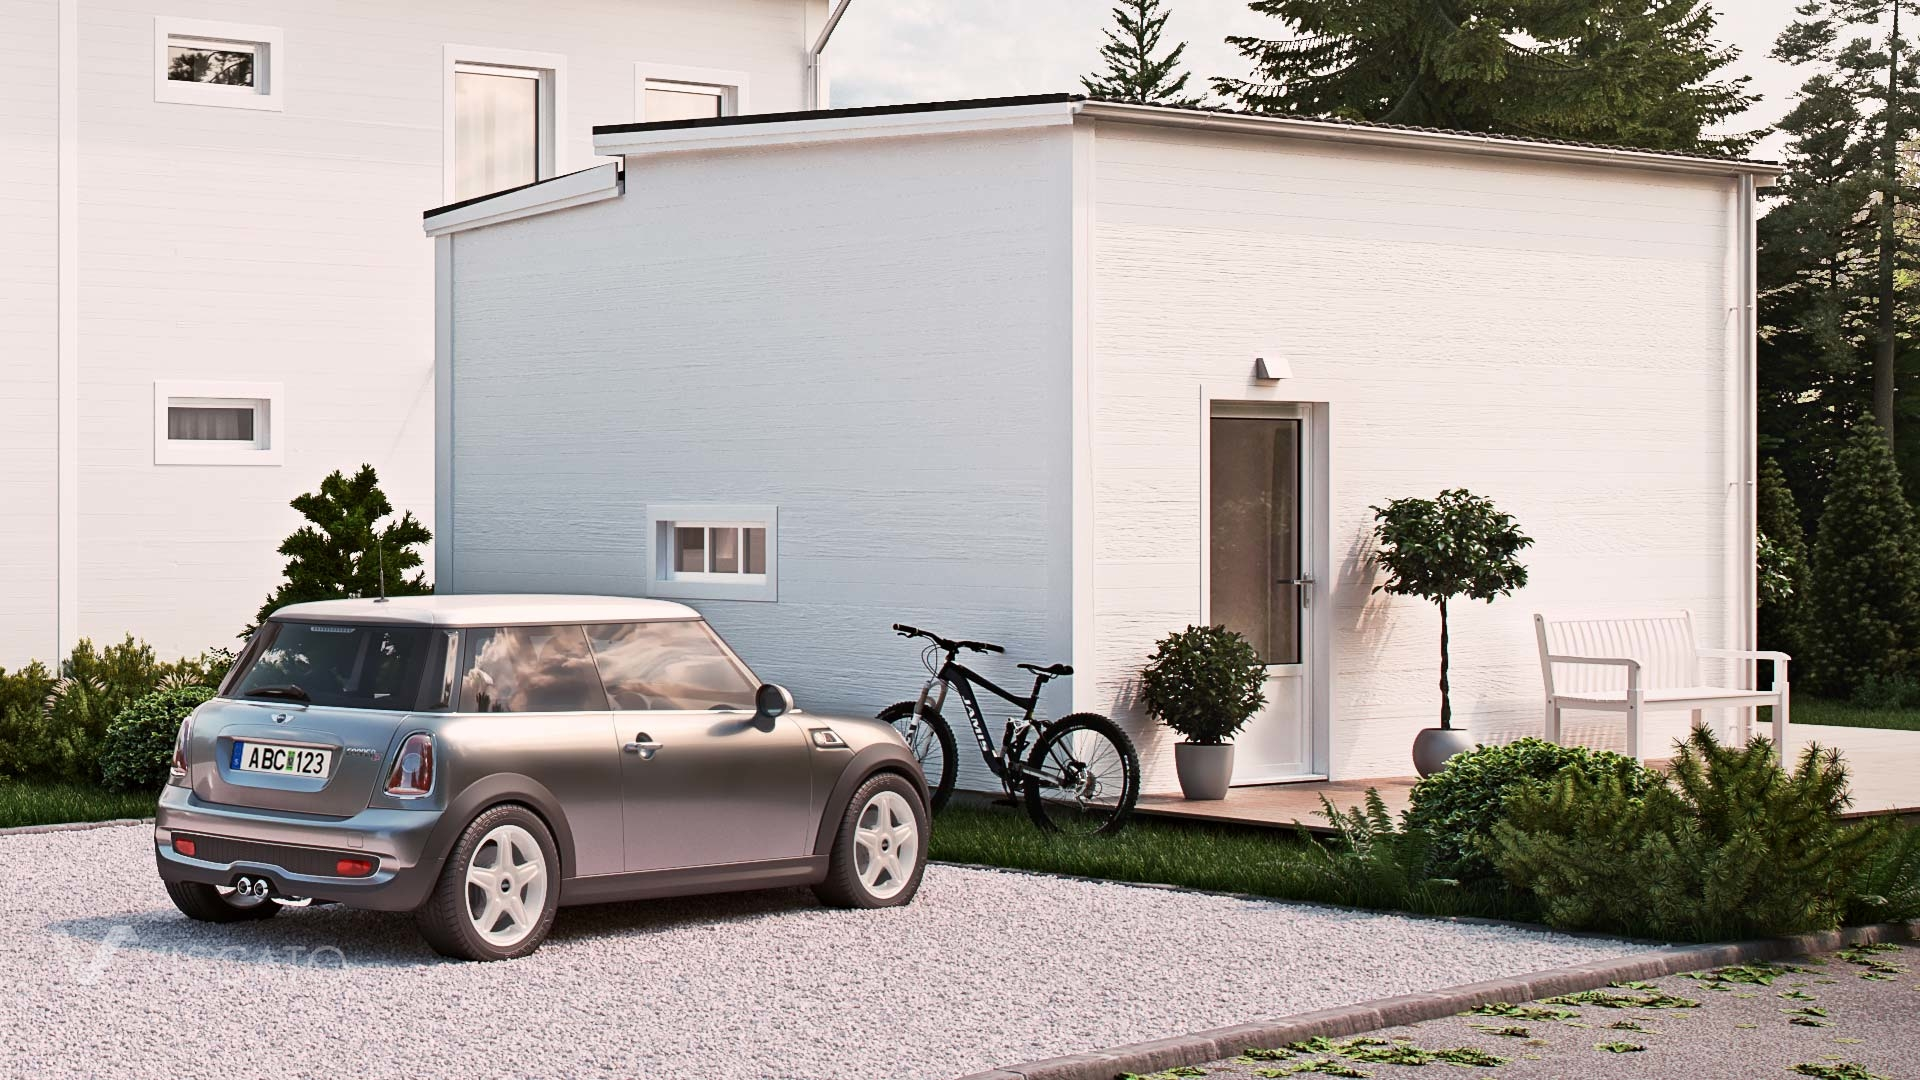 3D rendering of a multi family house with a private parking space